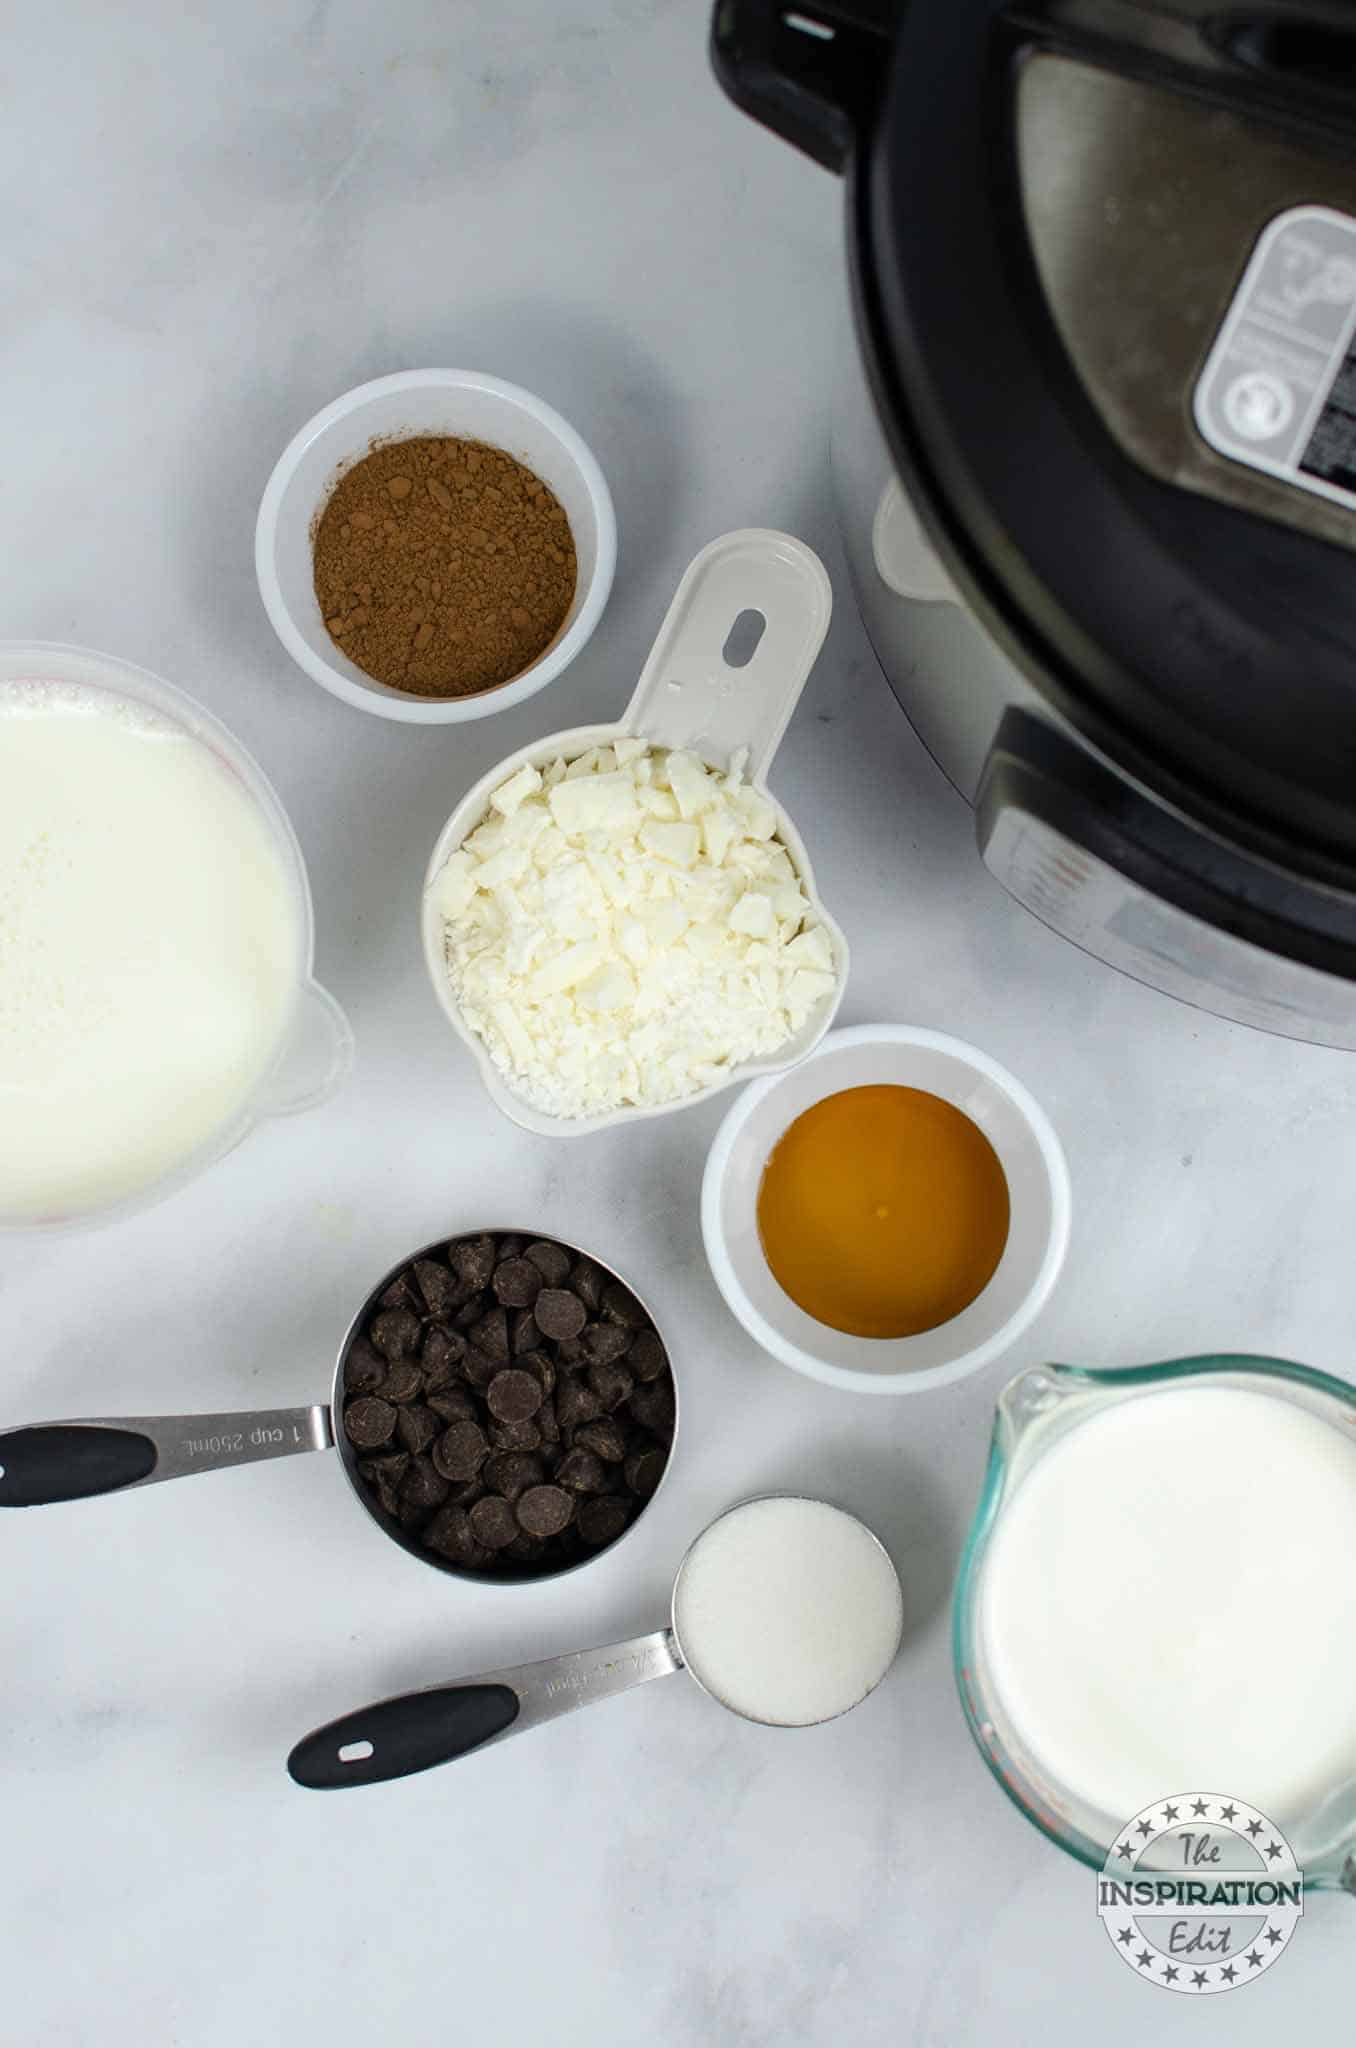 ingredients for Instant Pot Tuxedo Hot Chocolate